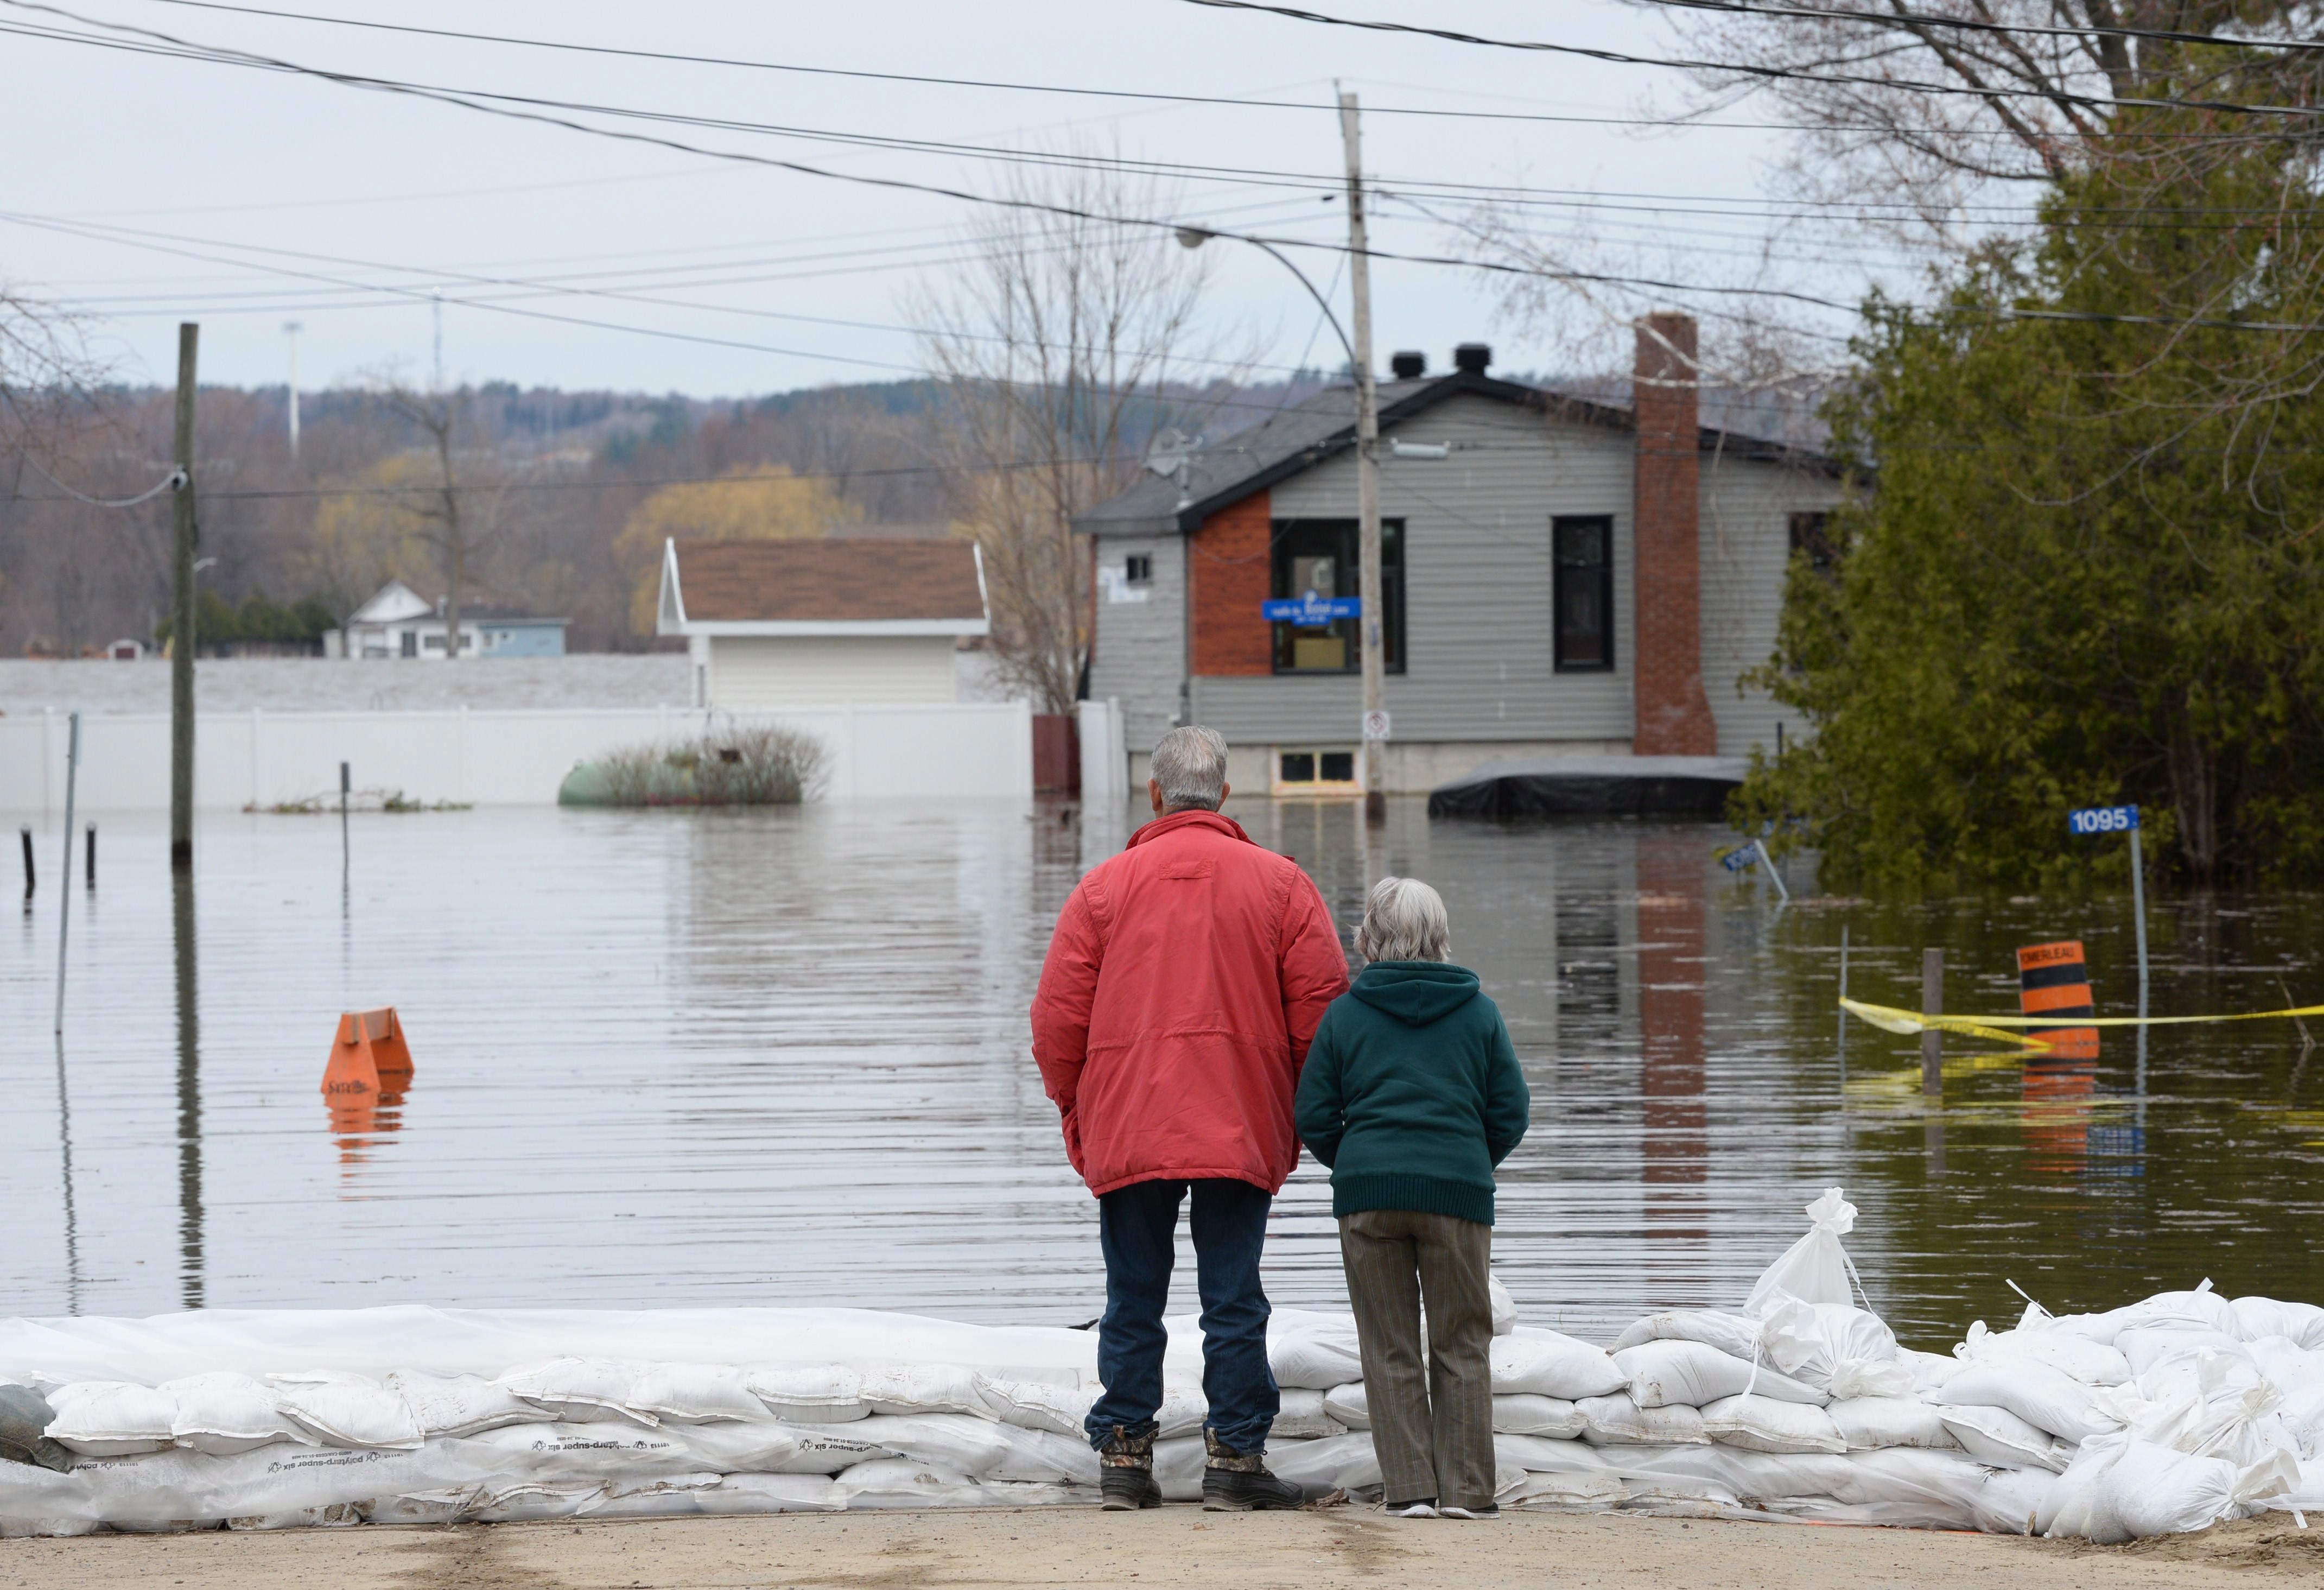 A couple surveys floodwaters from behind a row of sandbags on the street in an east end community of Ottawa.